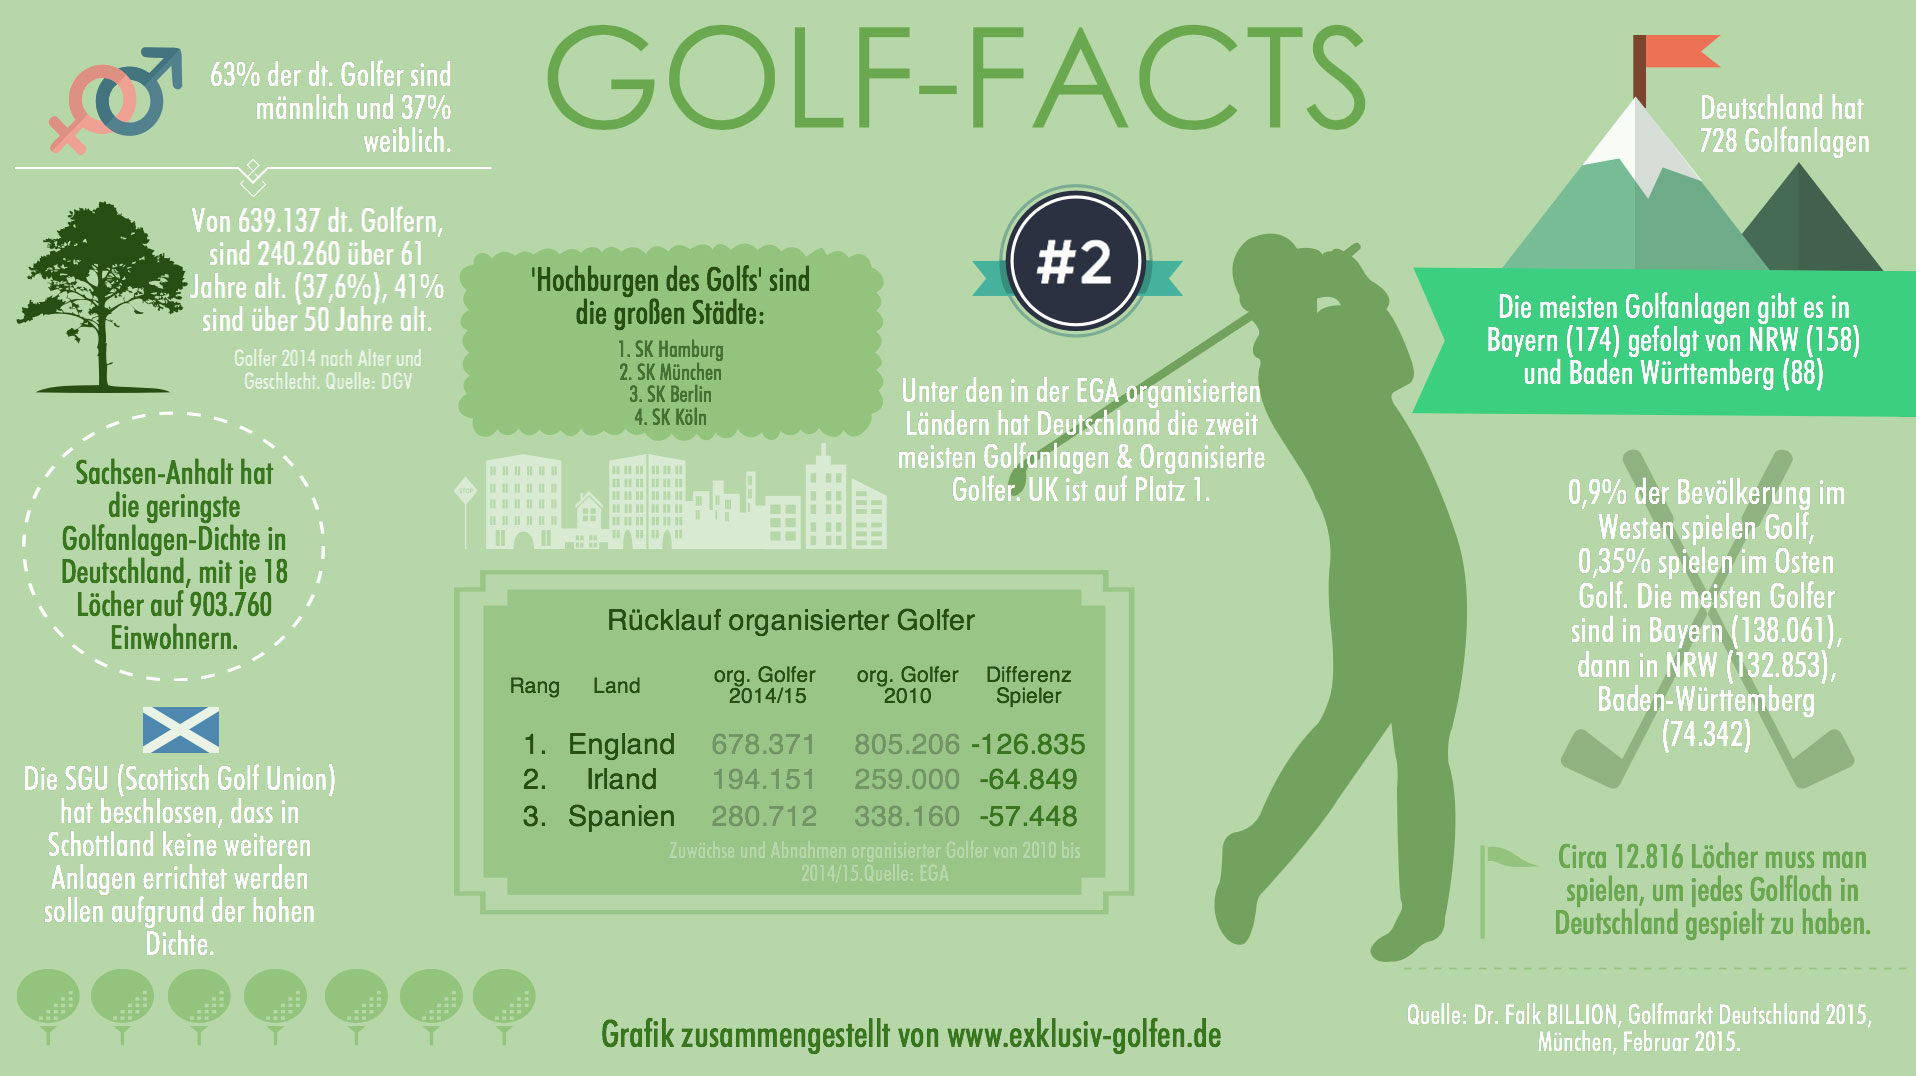 golf-facts-germany